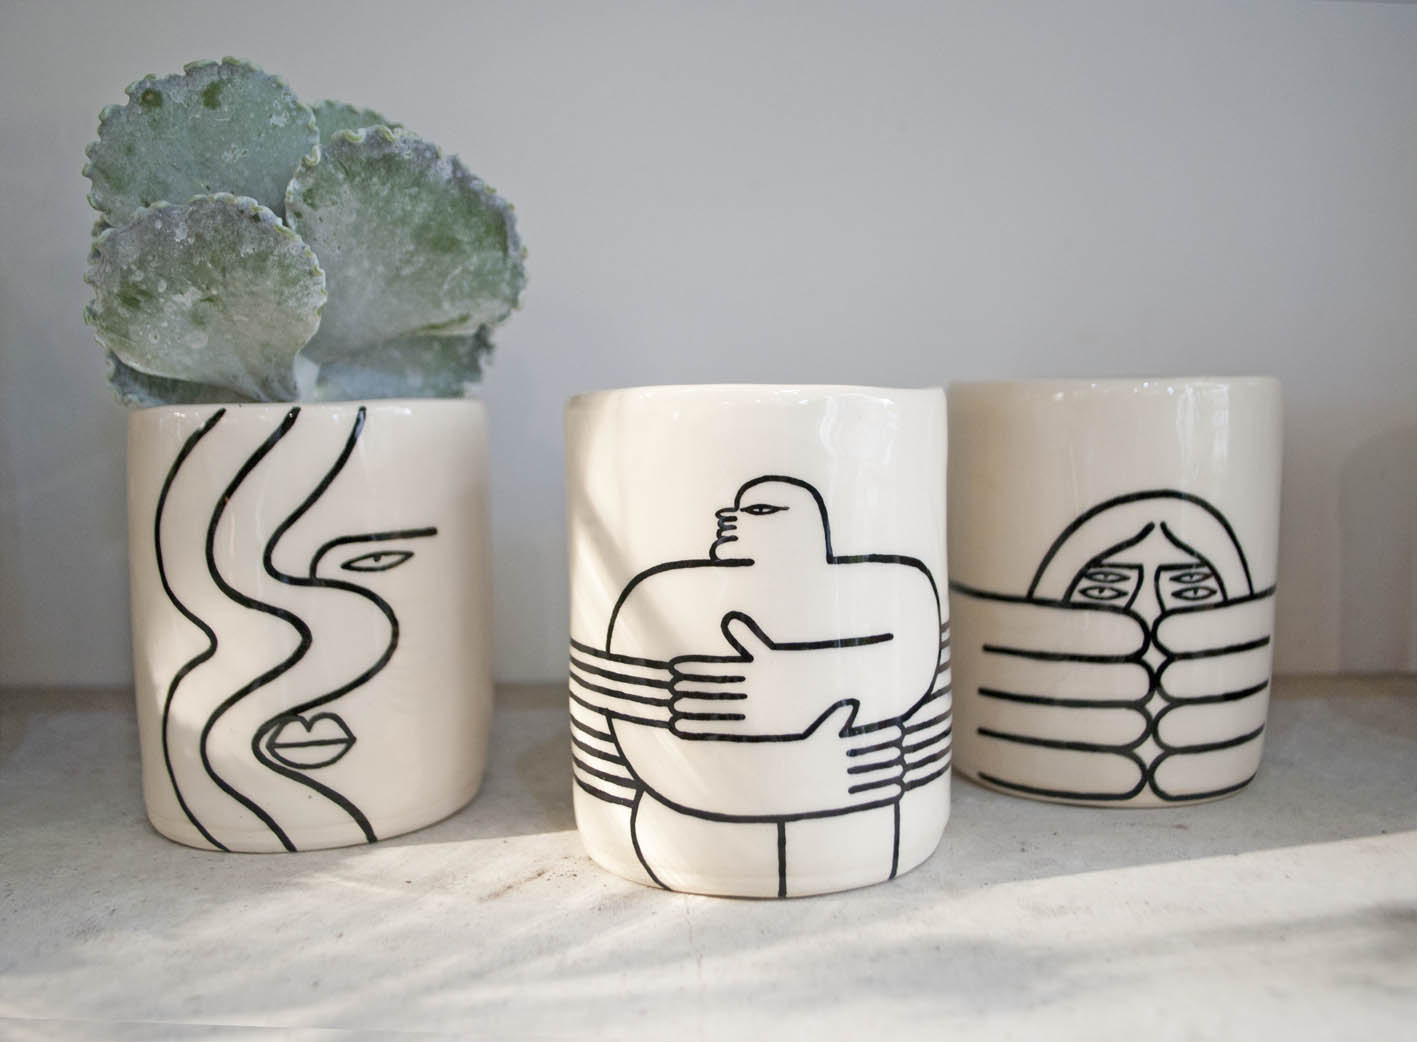 More of the great selection of pots